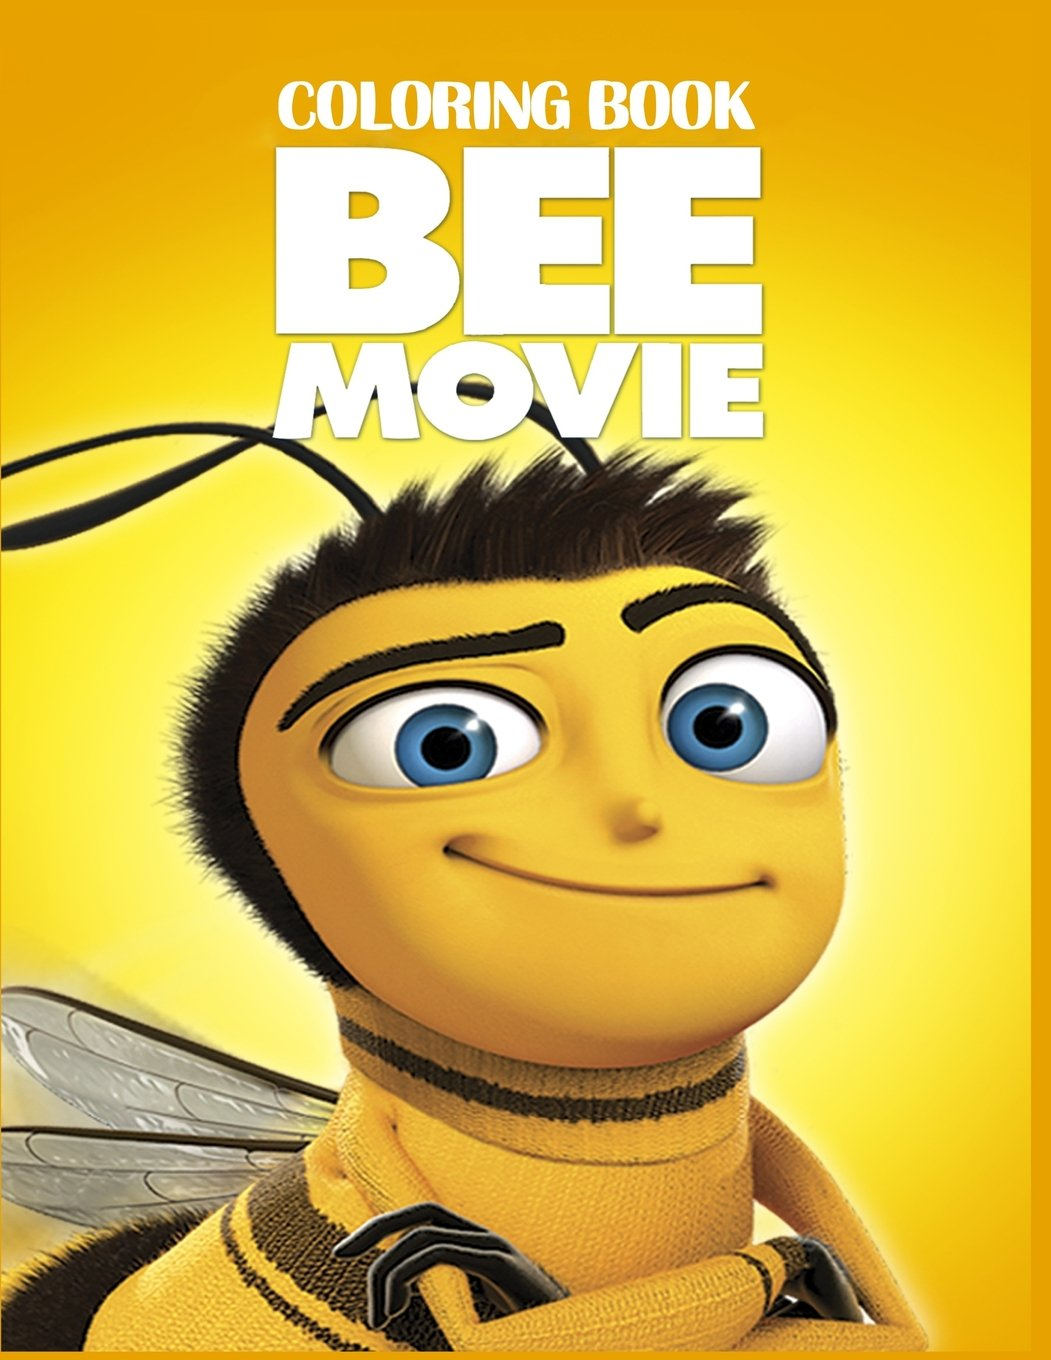 Read Online Bee Movie Coloring Book: Coloring Book for Kids and Adults, This Amazing Coloring Book Will Make Your Kids Happier and Give Them Joy (Best ... Books for Adults and Kids 2-4 4-8 8-12+) pdf